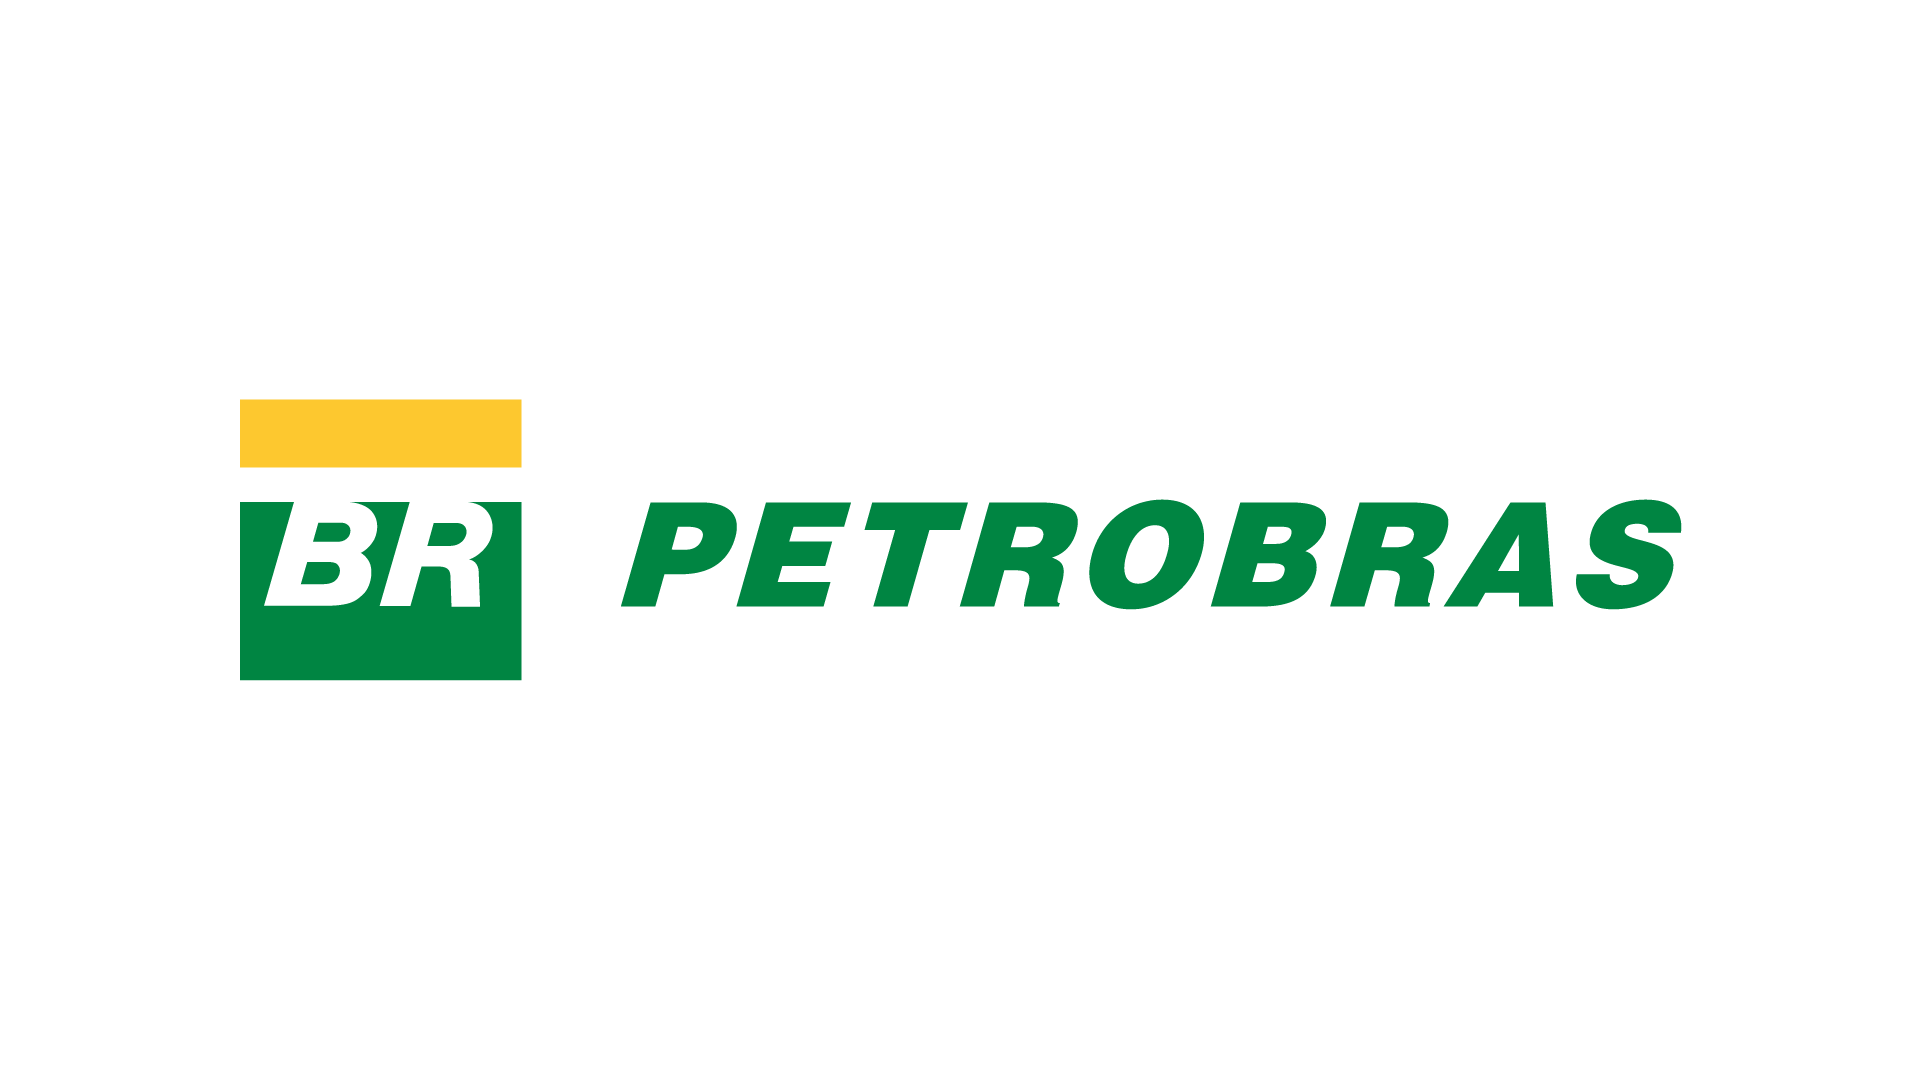 Pbr Stock Quote Petroleo Brasileiro S.a.petrobras Nyse Pbr Rings The Nyse